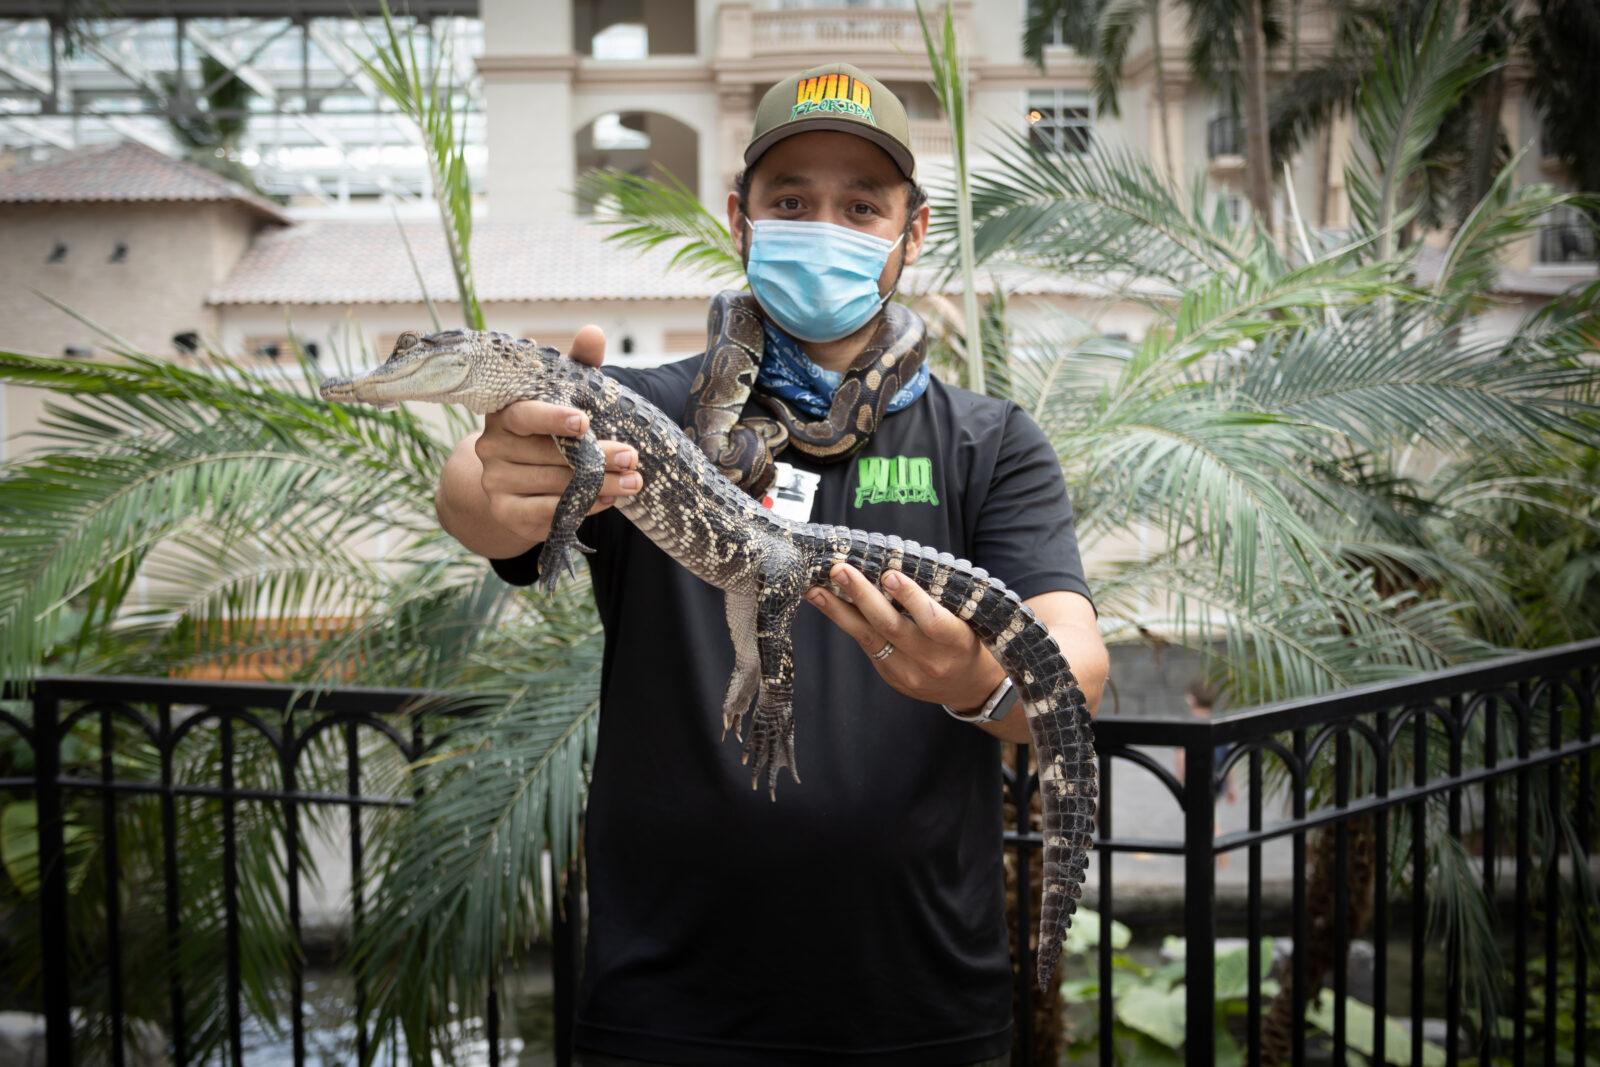 Gaylord Palms Partnership with Wild Florida